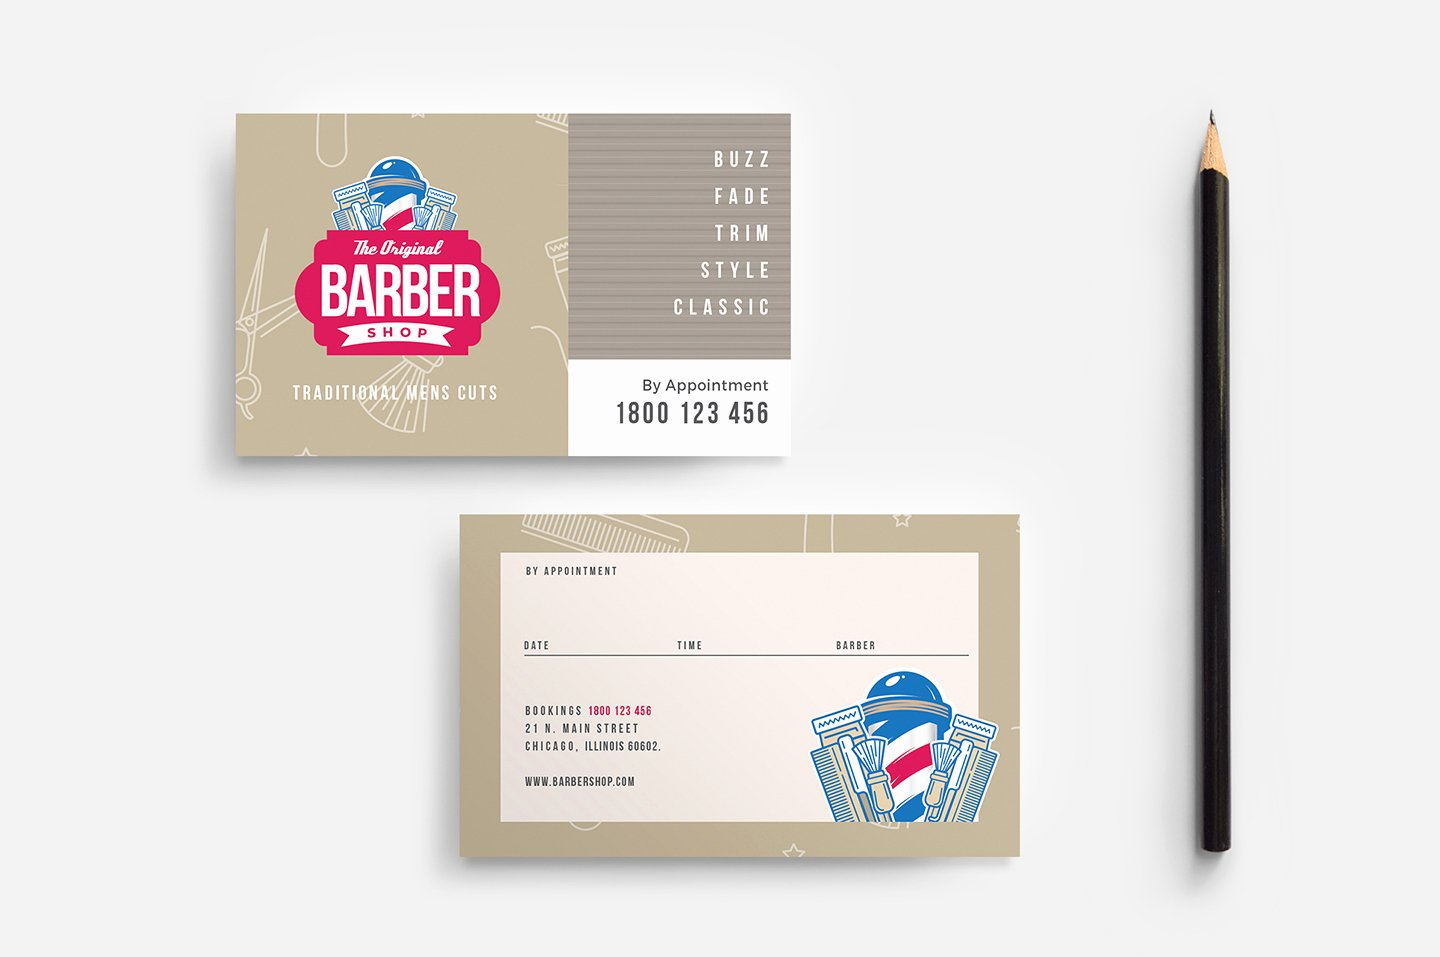 Barber Business Card Template Awesome Barber S Shop Business Card Template In Psd Ai & Vector